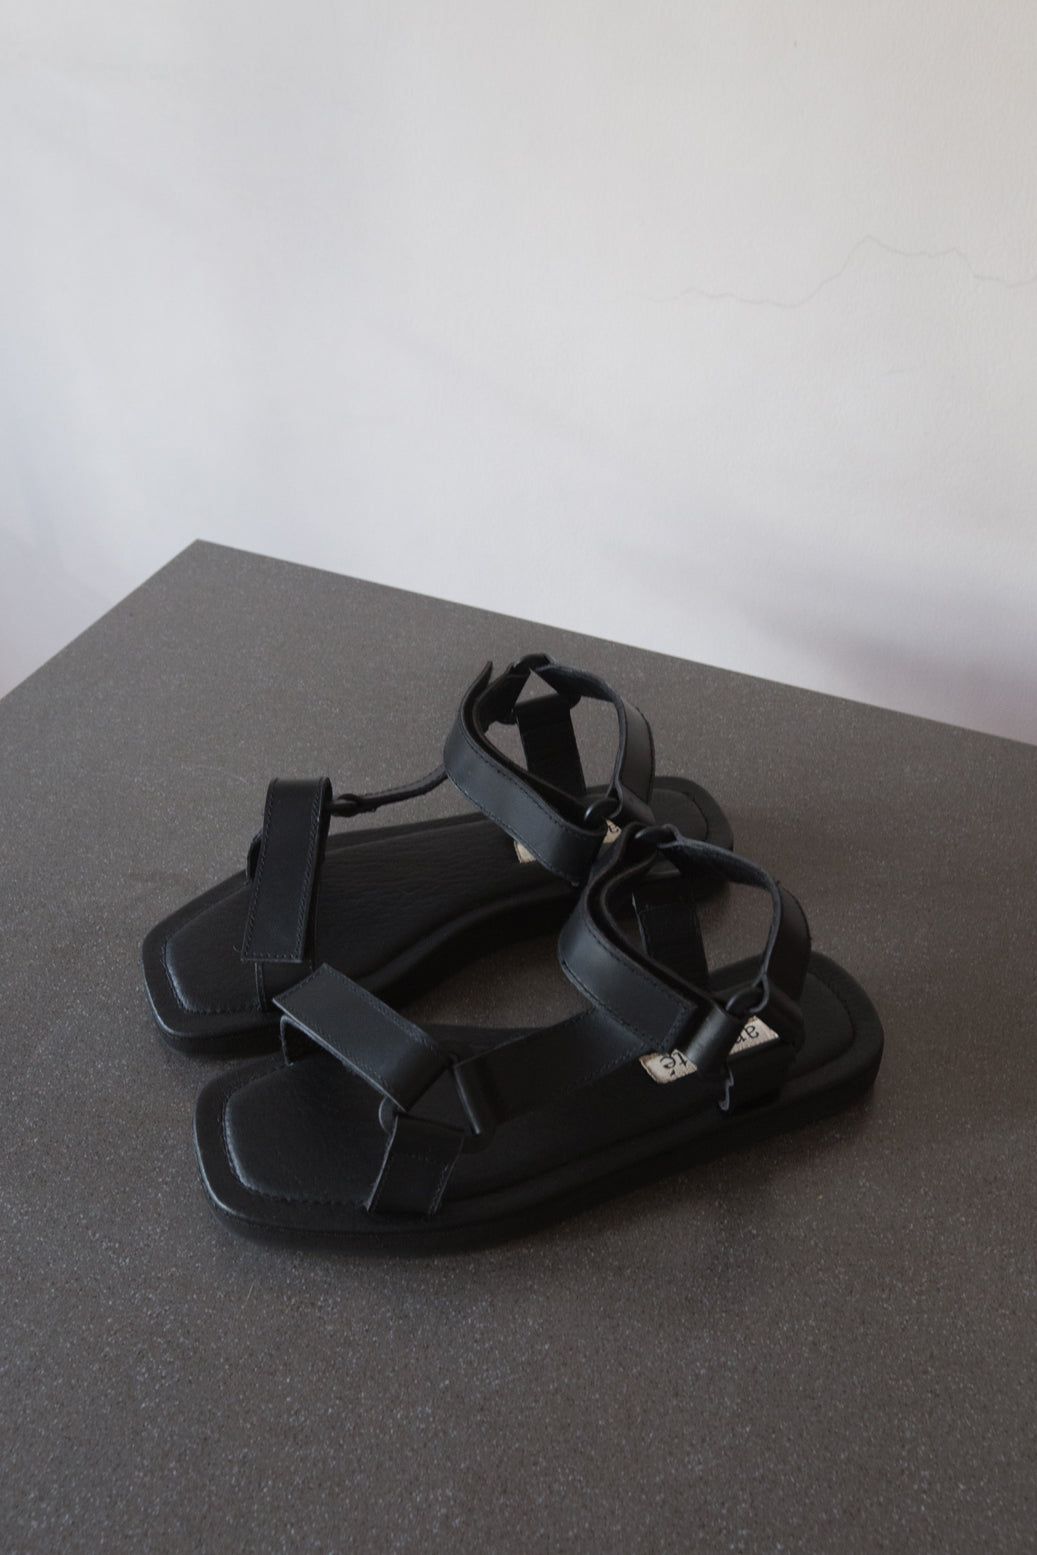 The Sportif Sandal in Black - andanté, sandals - loafers, sandals leather footwear